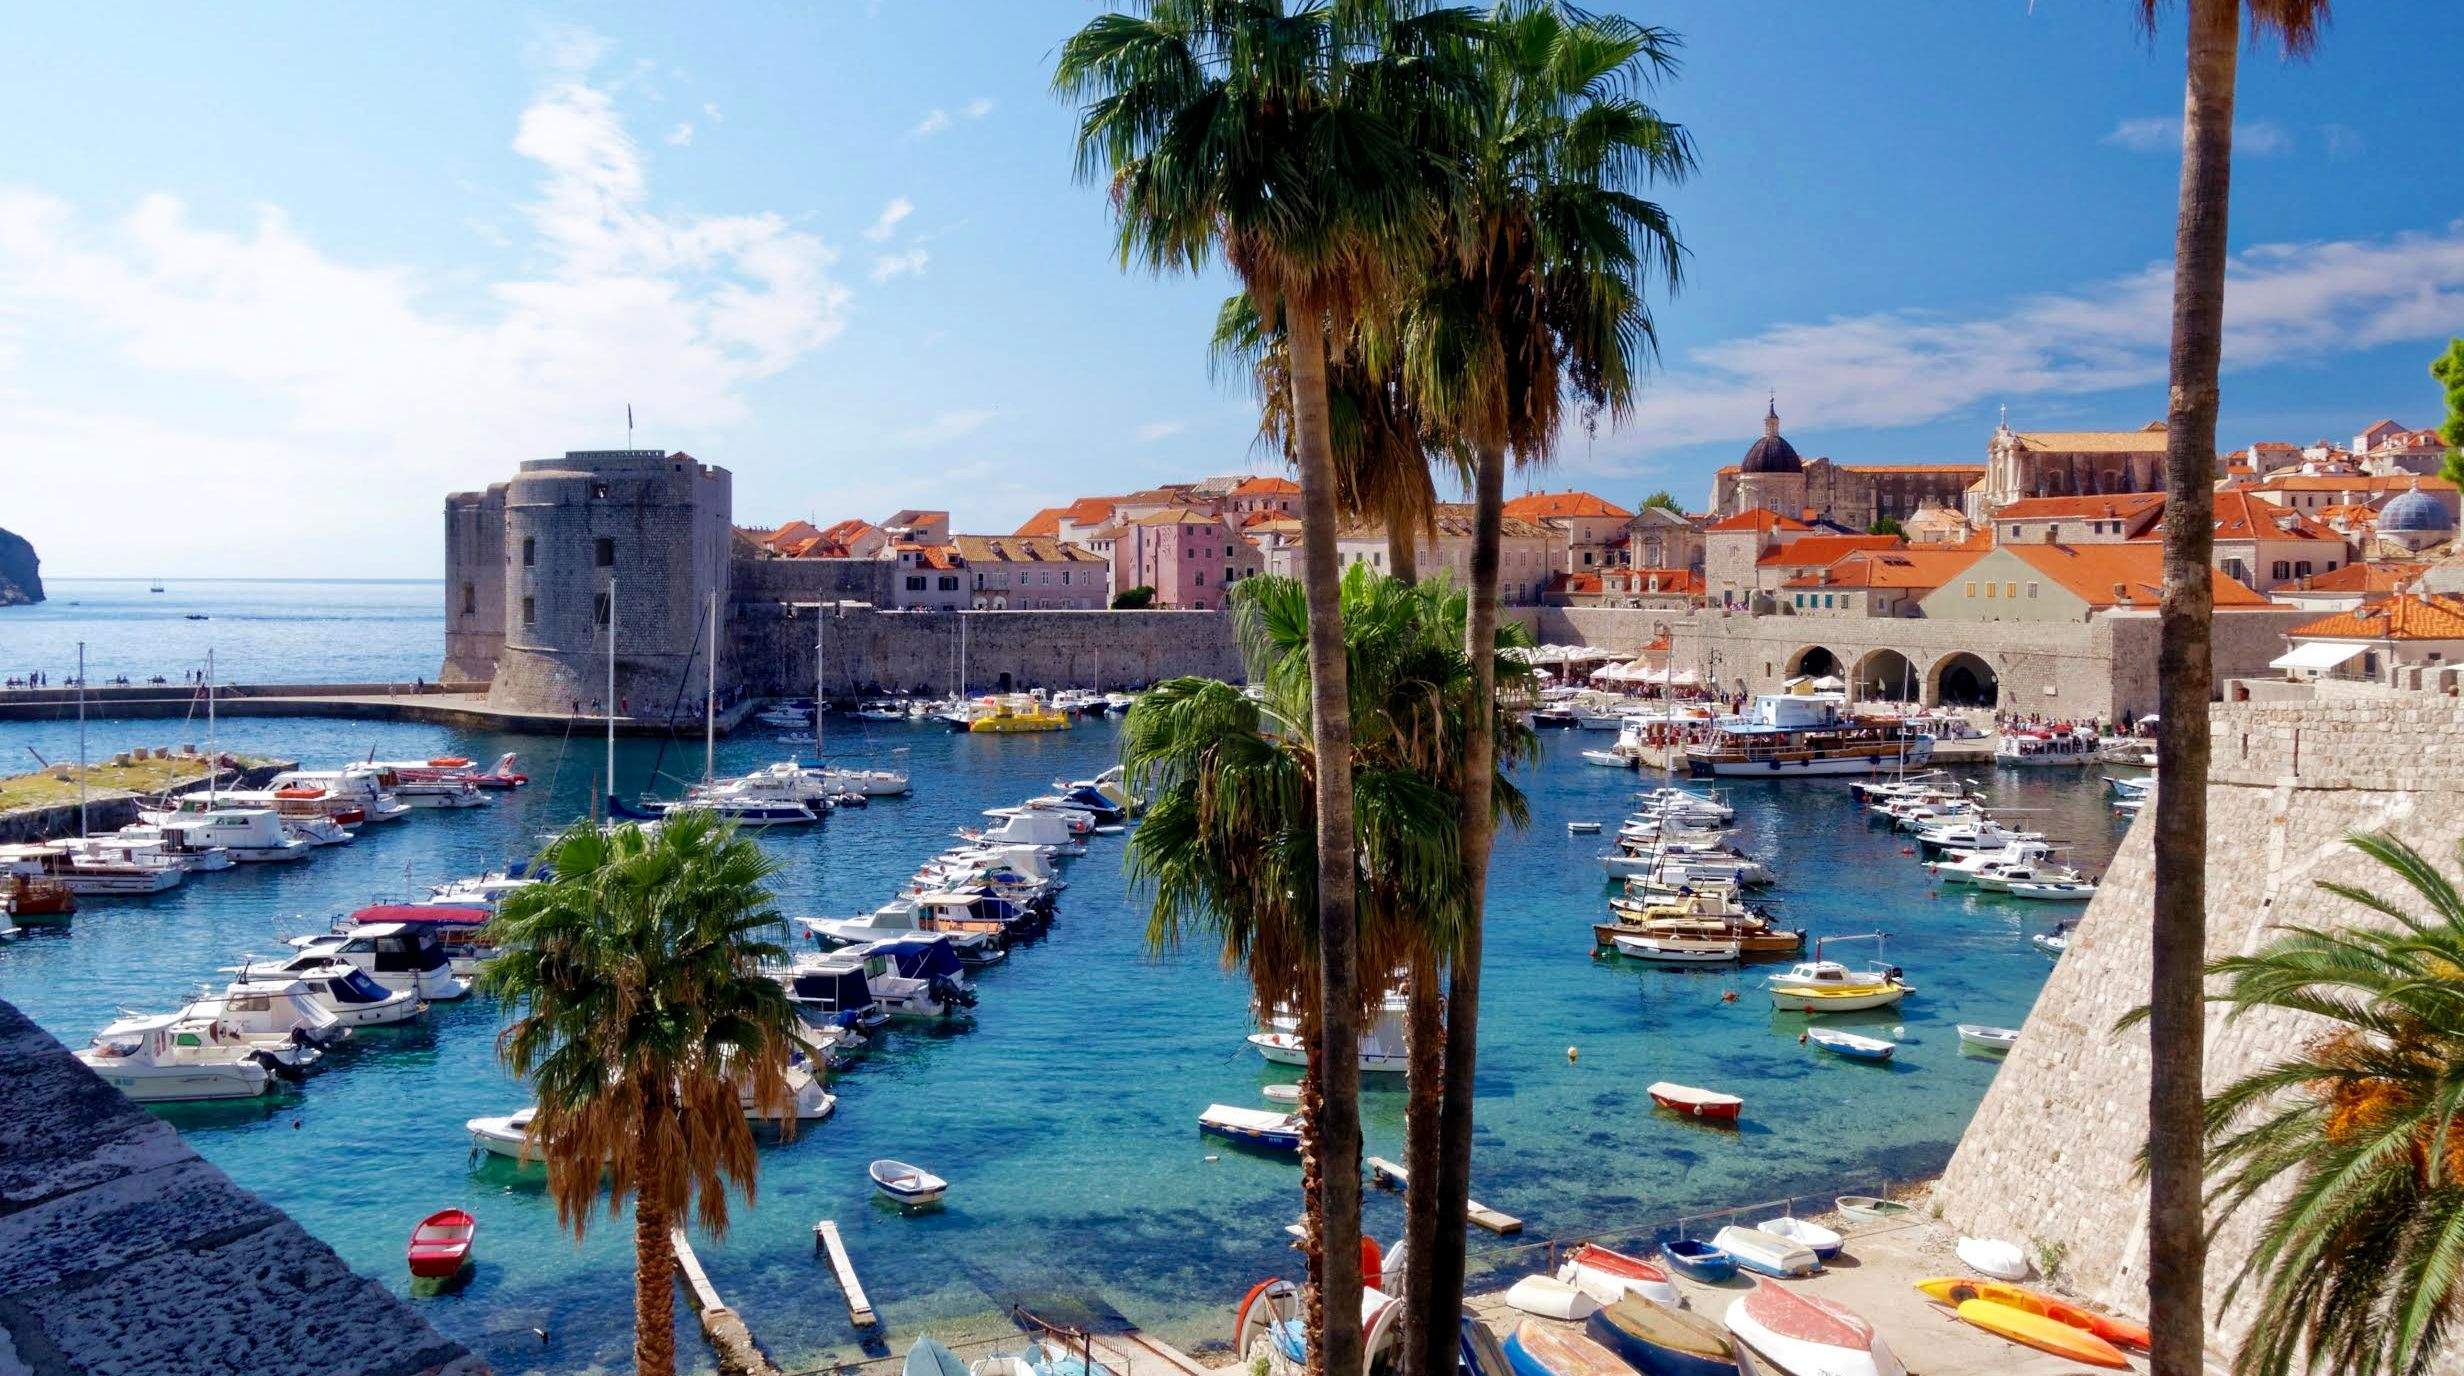 [PHOTOS] Cameras Installed as Dubrovnik Sets Daily Tourist Limit